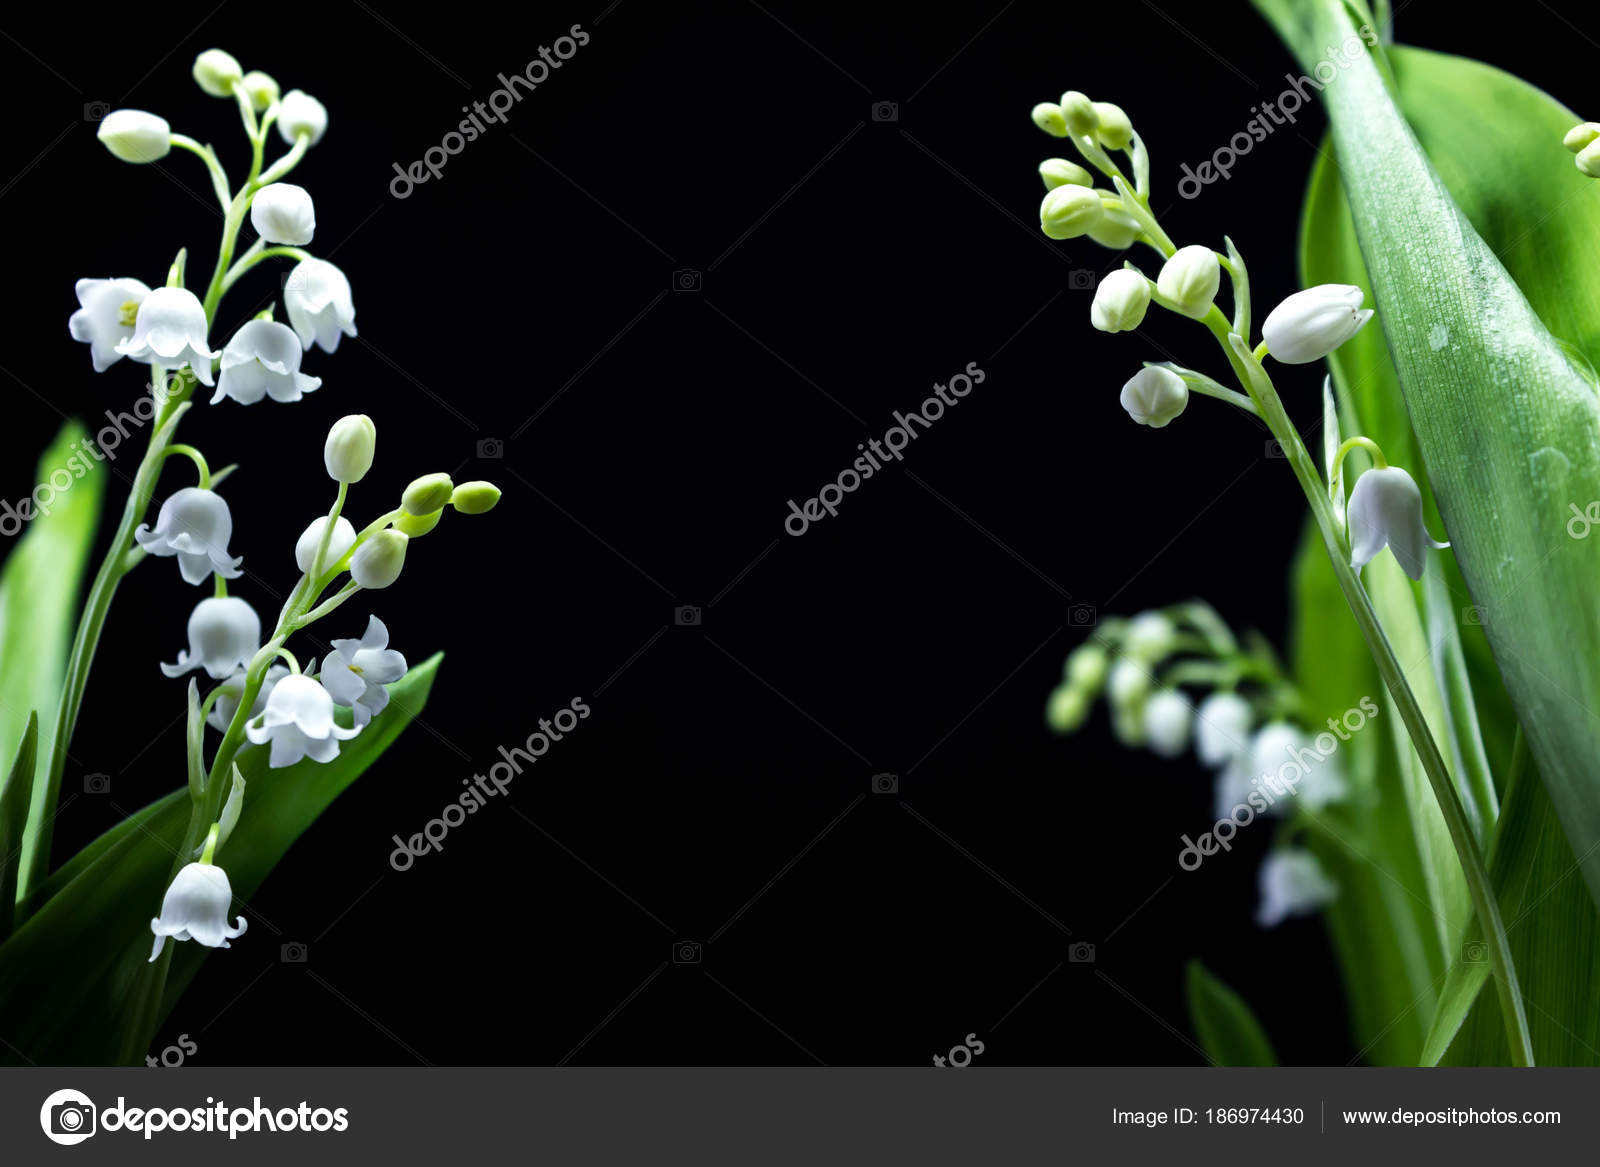 Fresh spring flowers lily of the valley on a black background fresh spring fragrant flowers lily of the valley on a black background bright and juicy background of delicate lily of the valley flowers izmirmasajfo